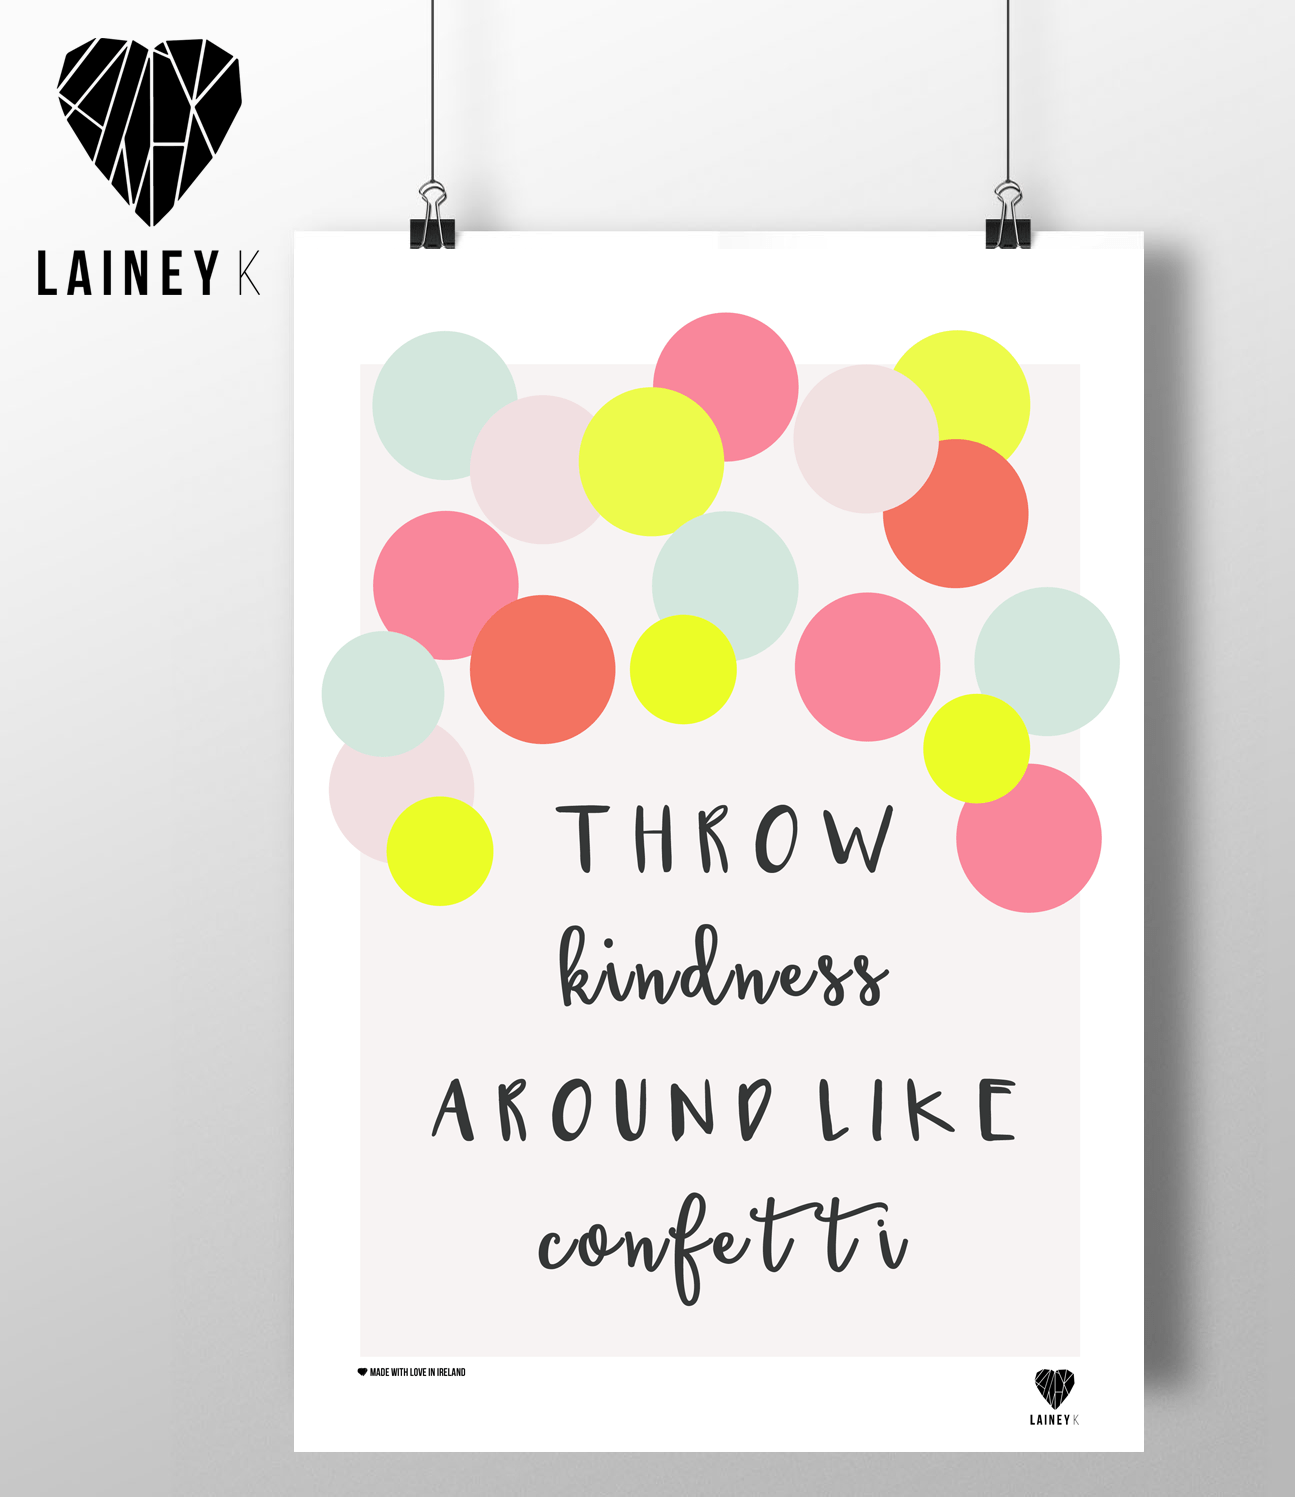 (A4 Print) Throw Confetti Around Like Kindness - MIMI+MARTHA